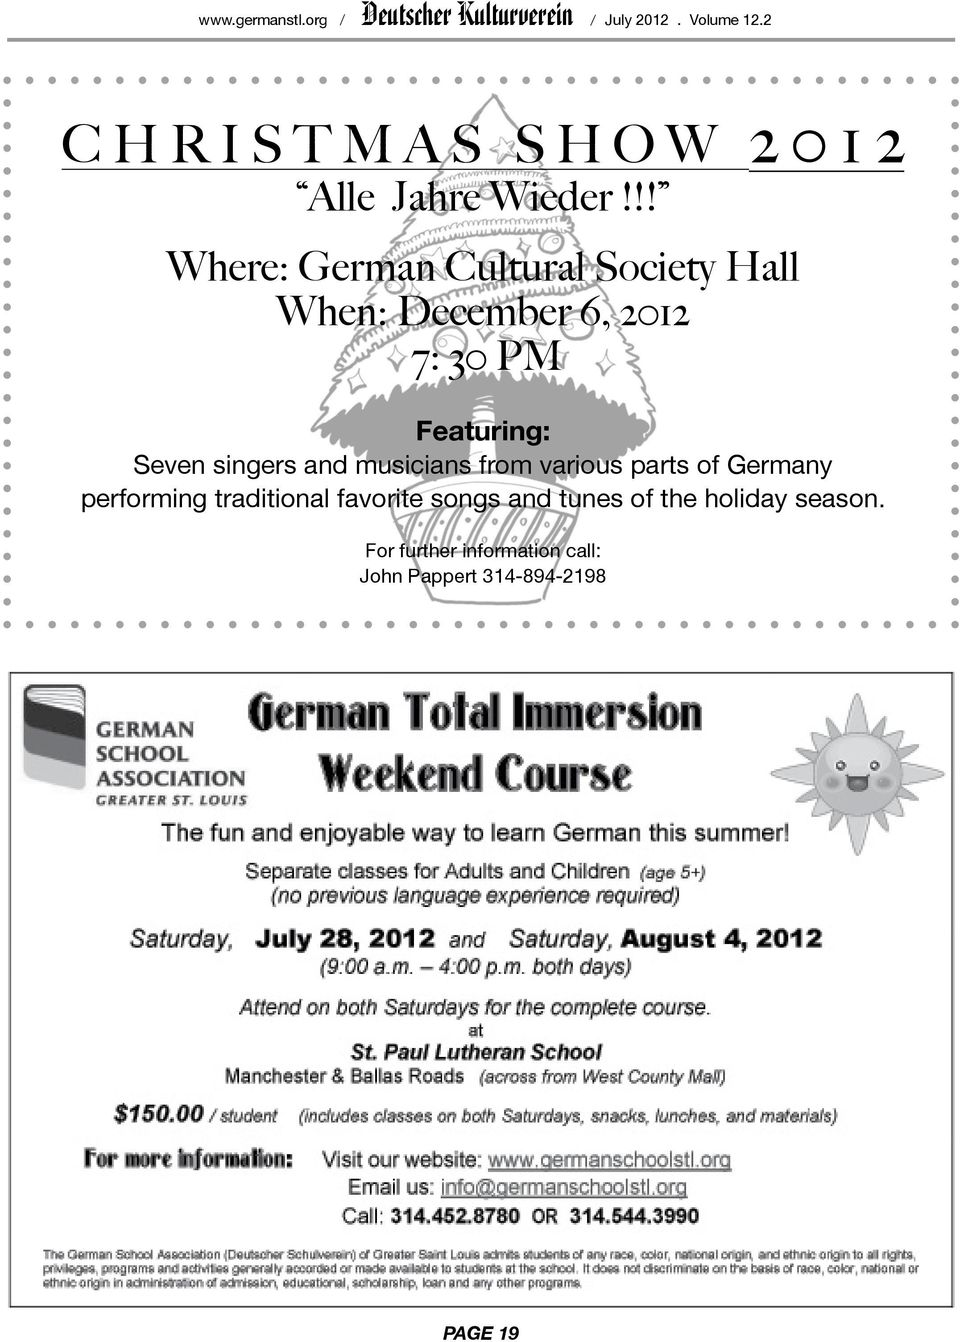 !! Where: German Cultural Society Hall When: December 6, 2012 7: 30 PM Featuring: Seven